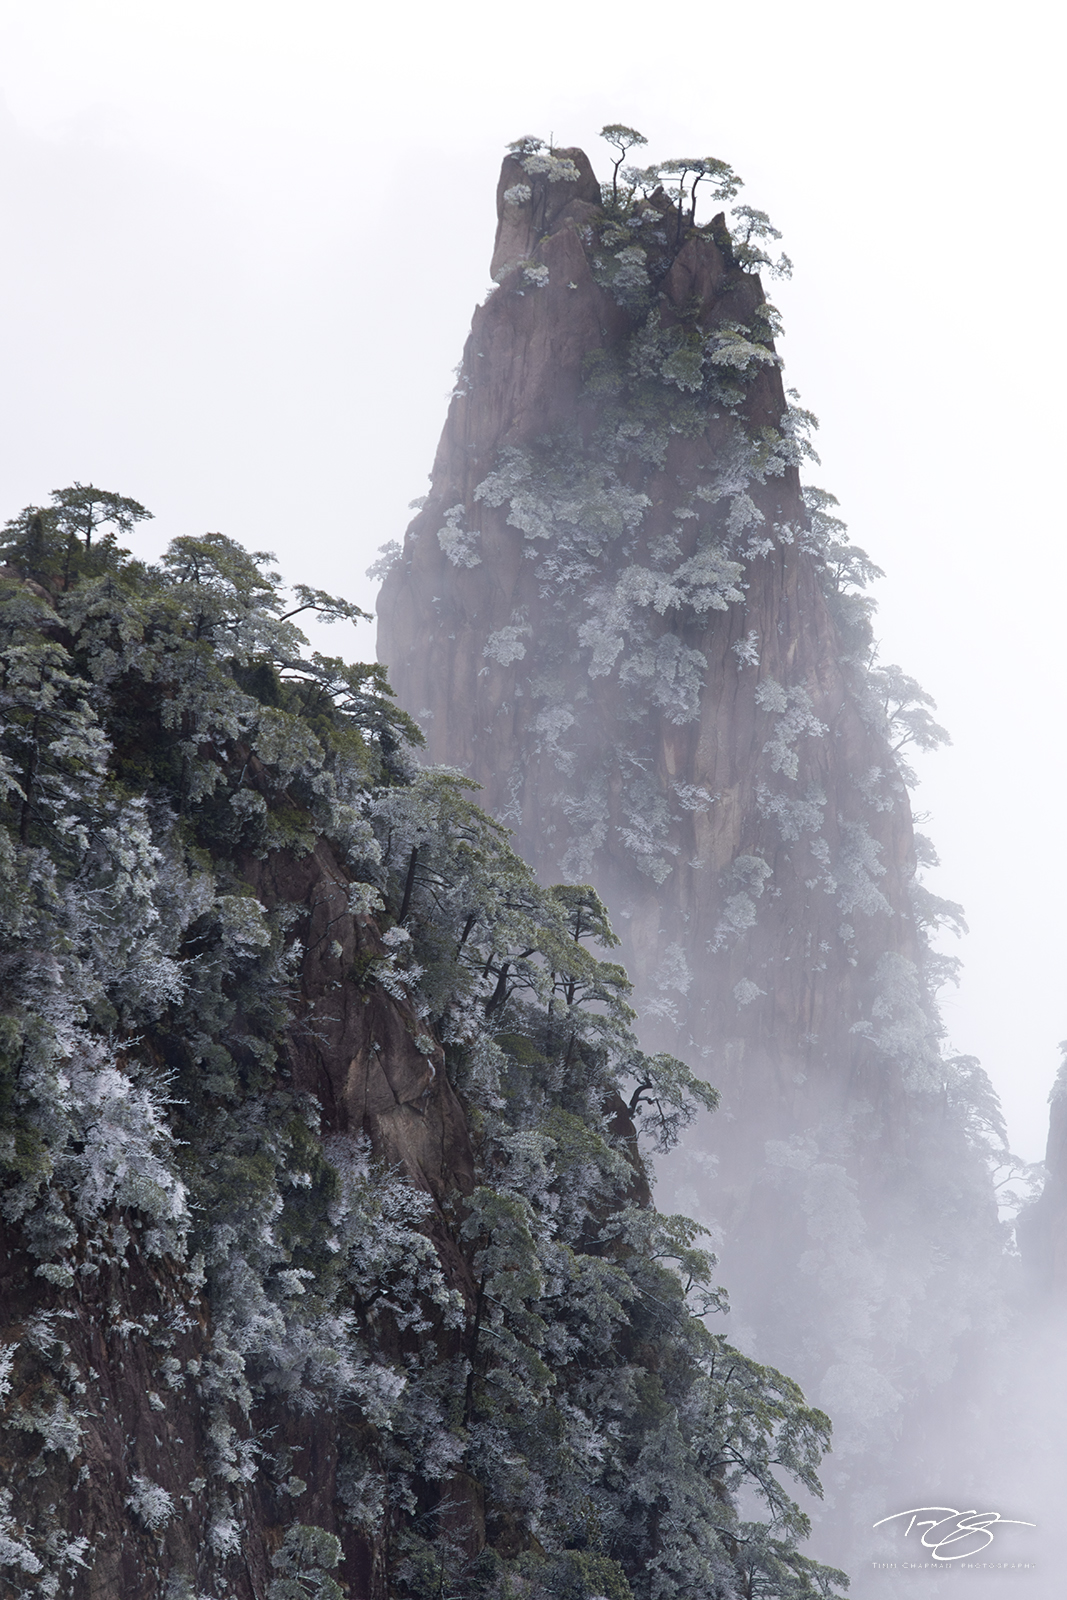 Frigid air cloaks Huangshan Pine trees in a wintery frost